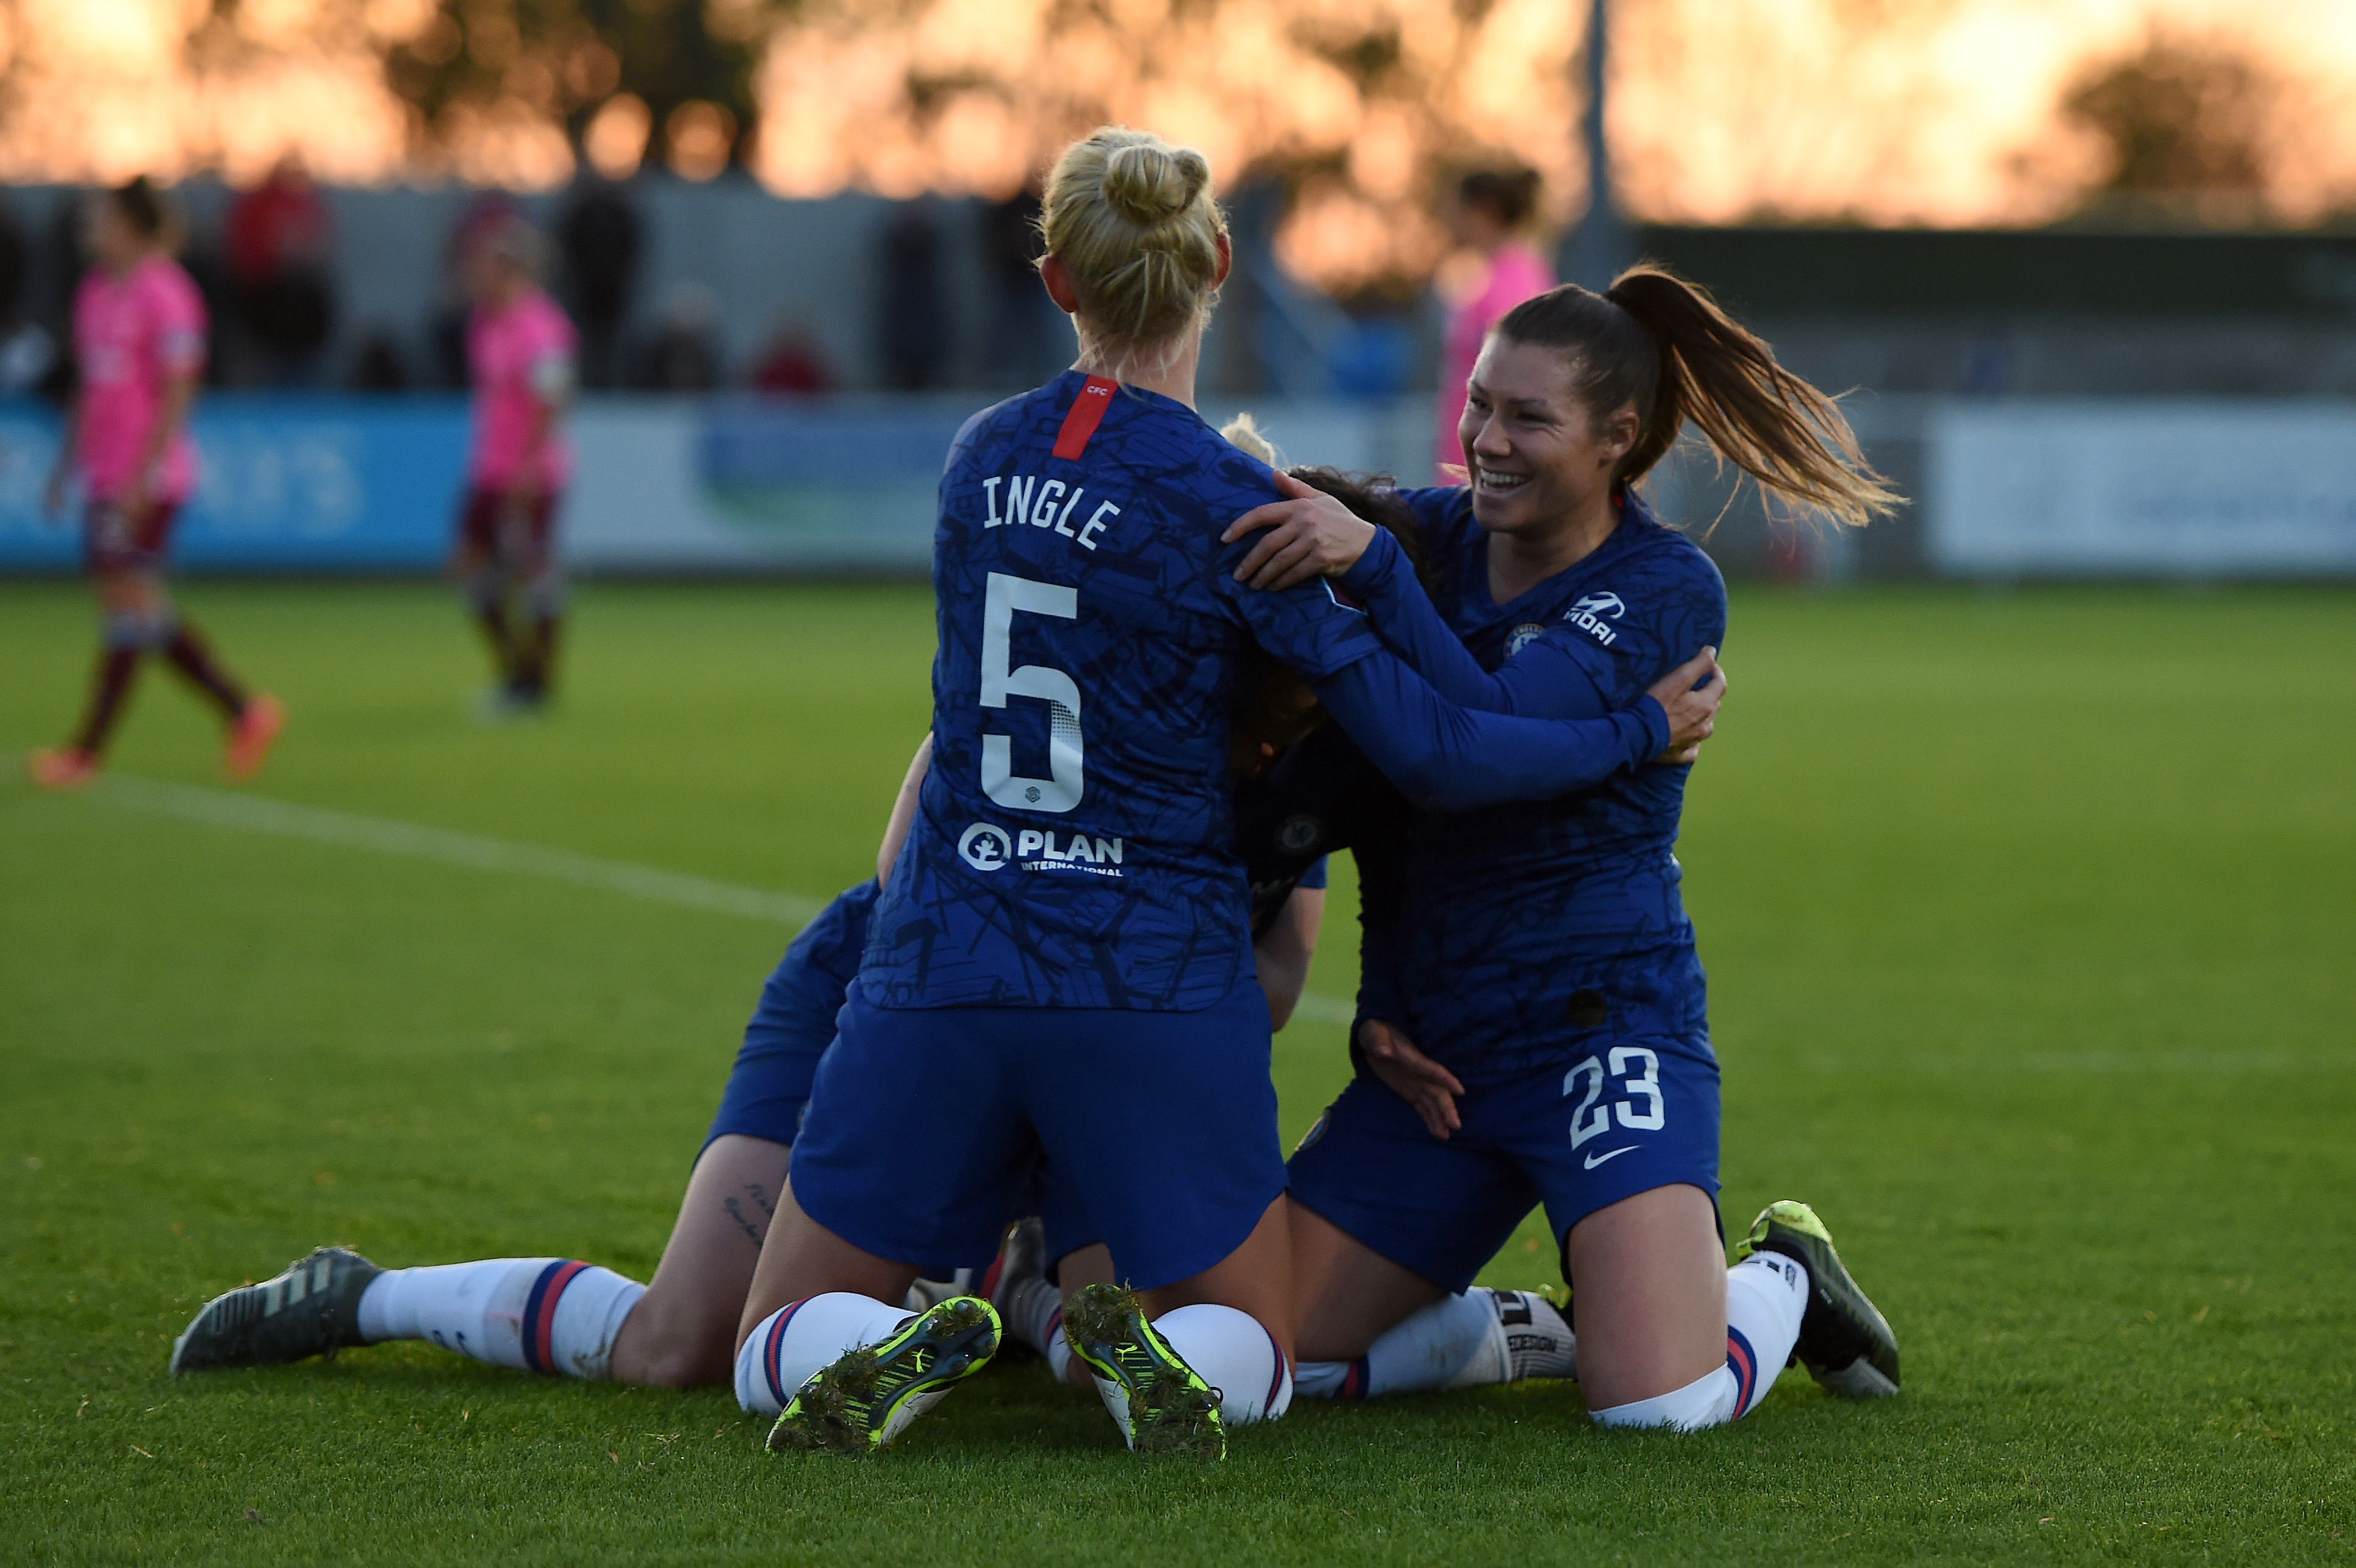 West Ham United v Chelsea - Barclays FA Women's Super League